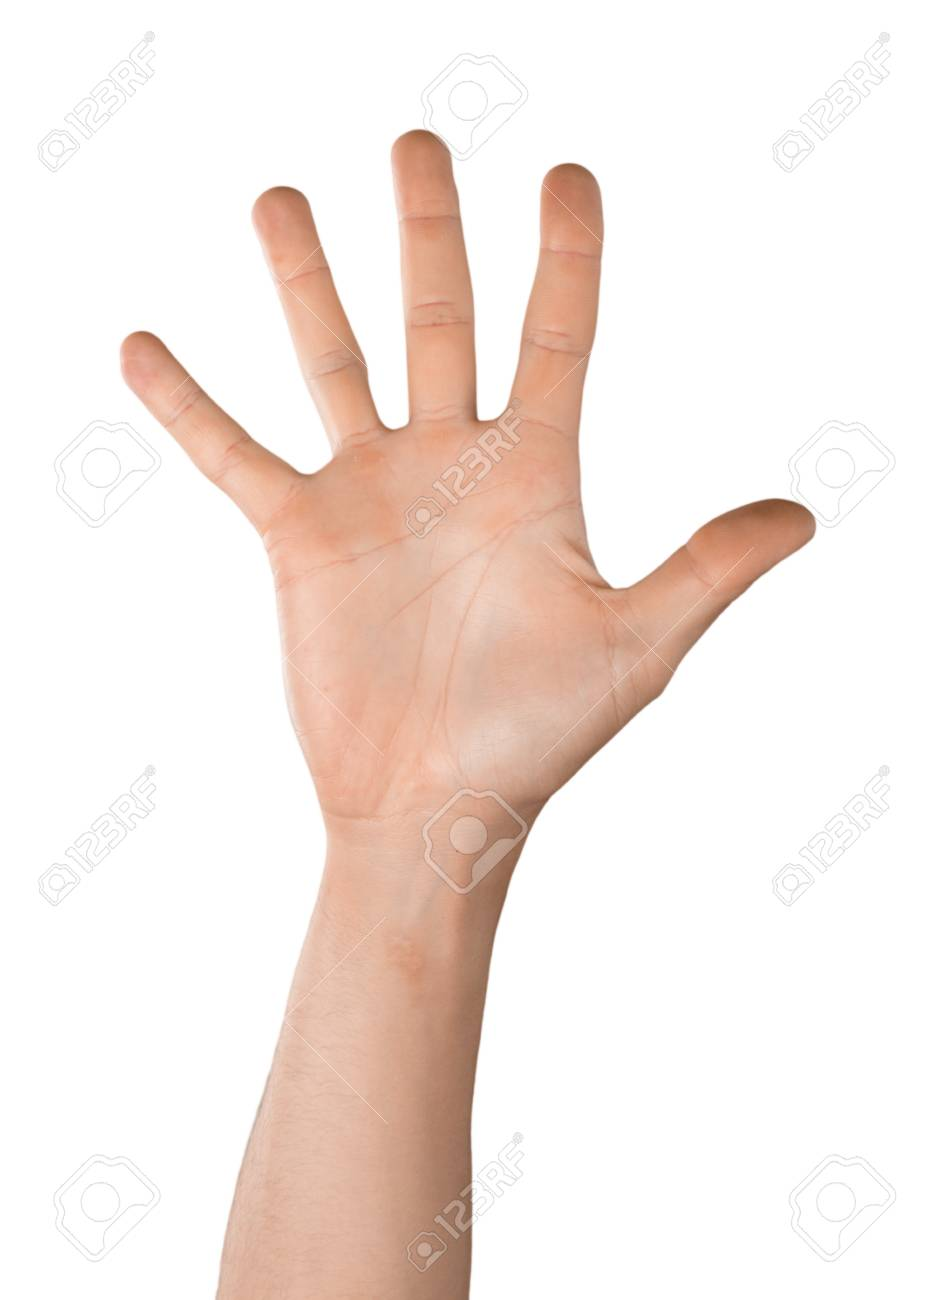 Raised Hand / Five Fingers Stock Photo, Picture And Royalty Free Image.  Image 104626809.